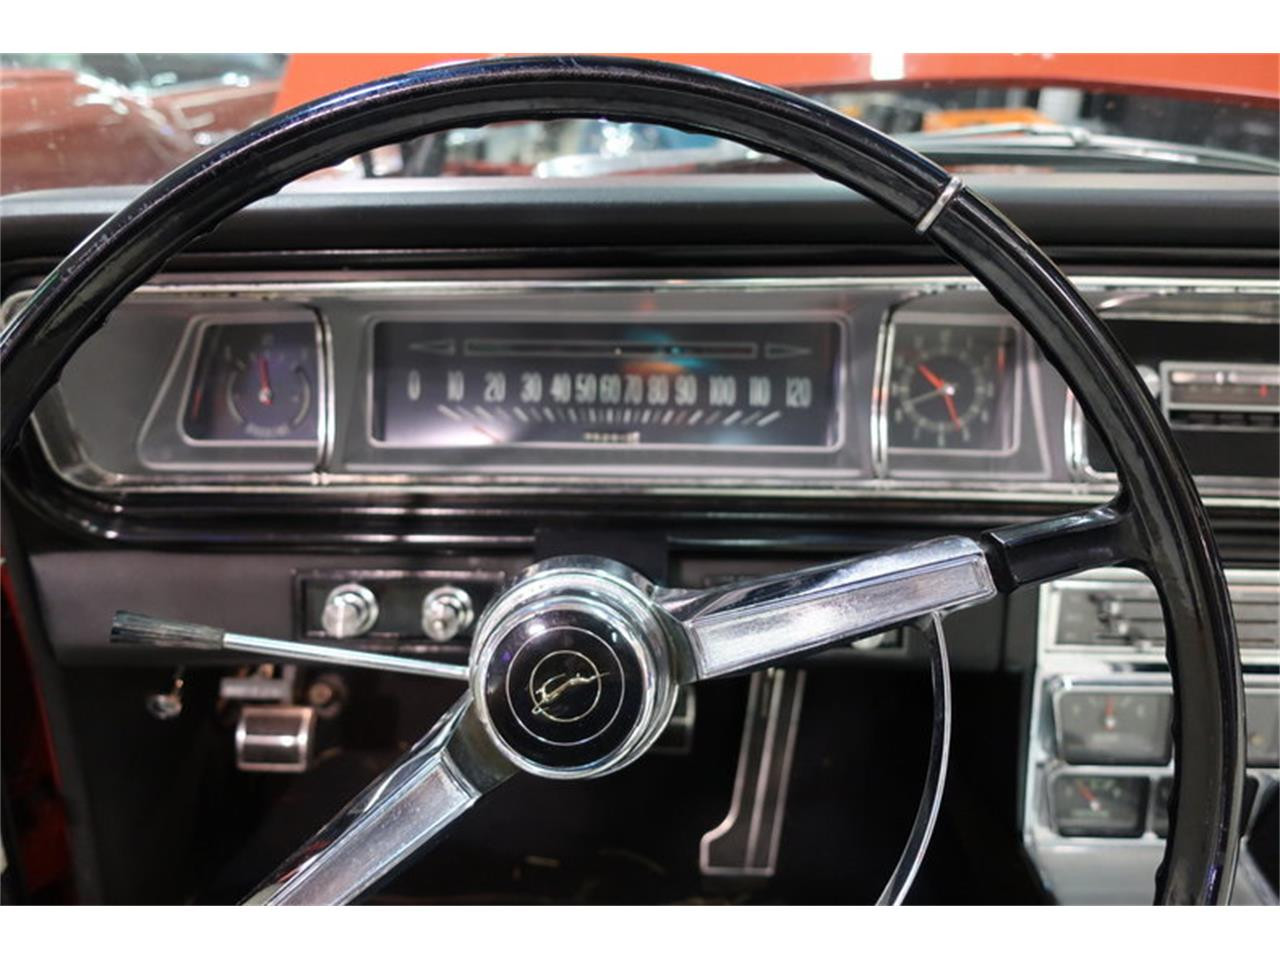 Large Picture of '66 Chevrolet Impala Auction Vehicle Offered by GAA Classic Cars Auctions - OF92